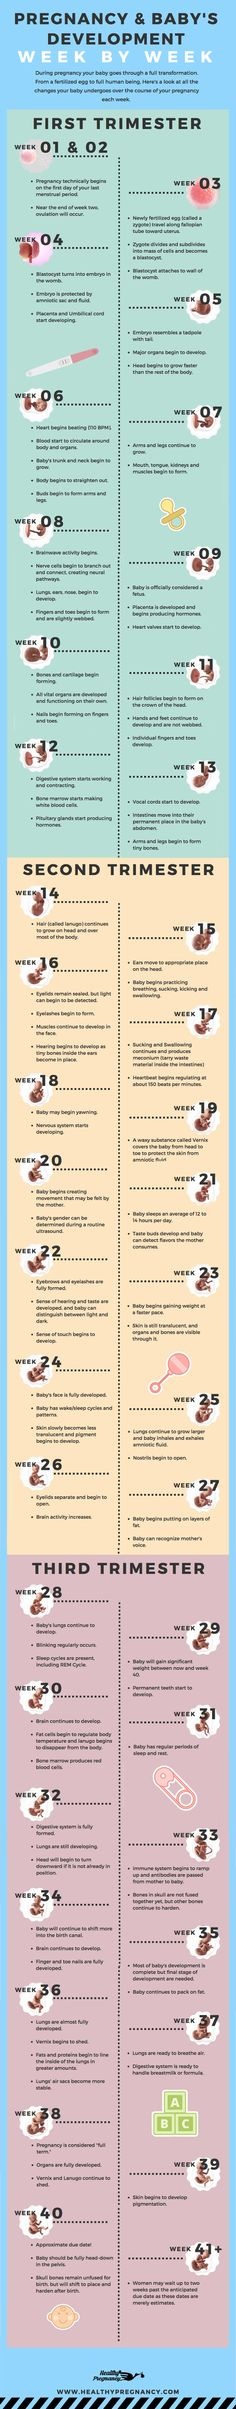 Pregnancy is a nine-month rollercoaster of changes. This guide can help you understand the changes  your baby will be going through during each week of your pregnancy.   Pregnant | Week by Week | Calendar | Pregnancy Calendar | Baby's Development | Fetus Development | Baby's Growth